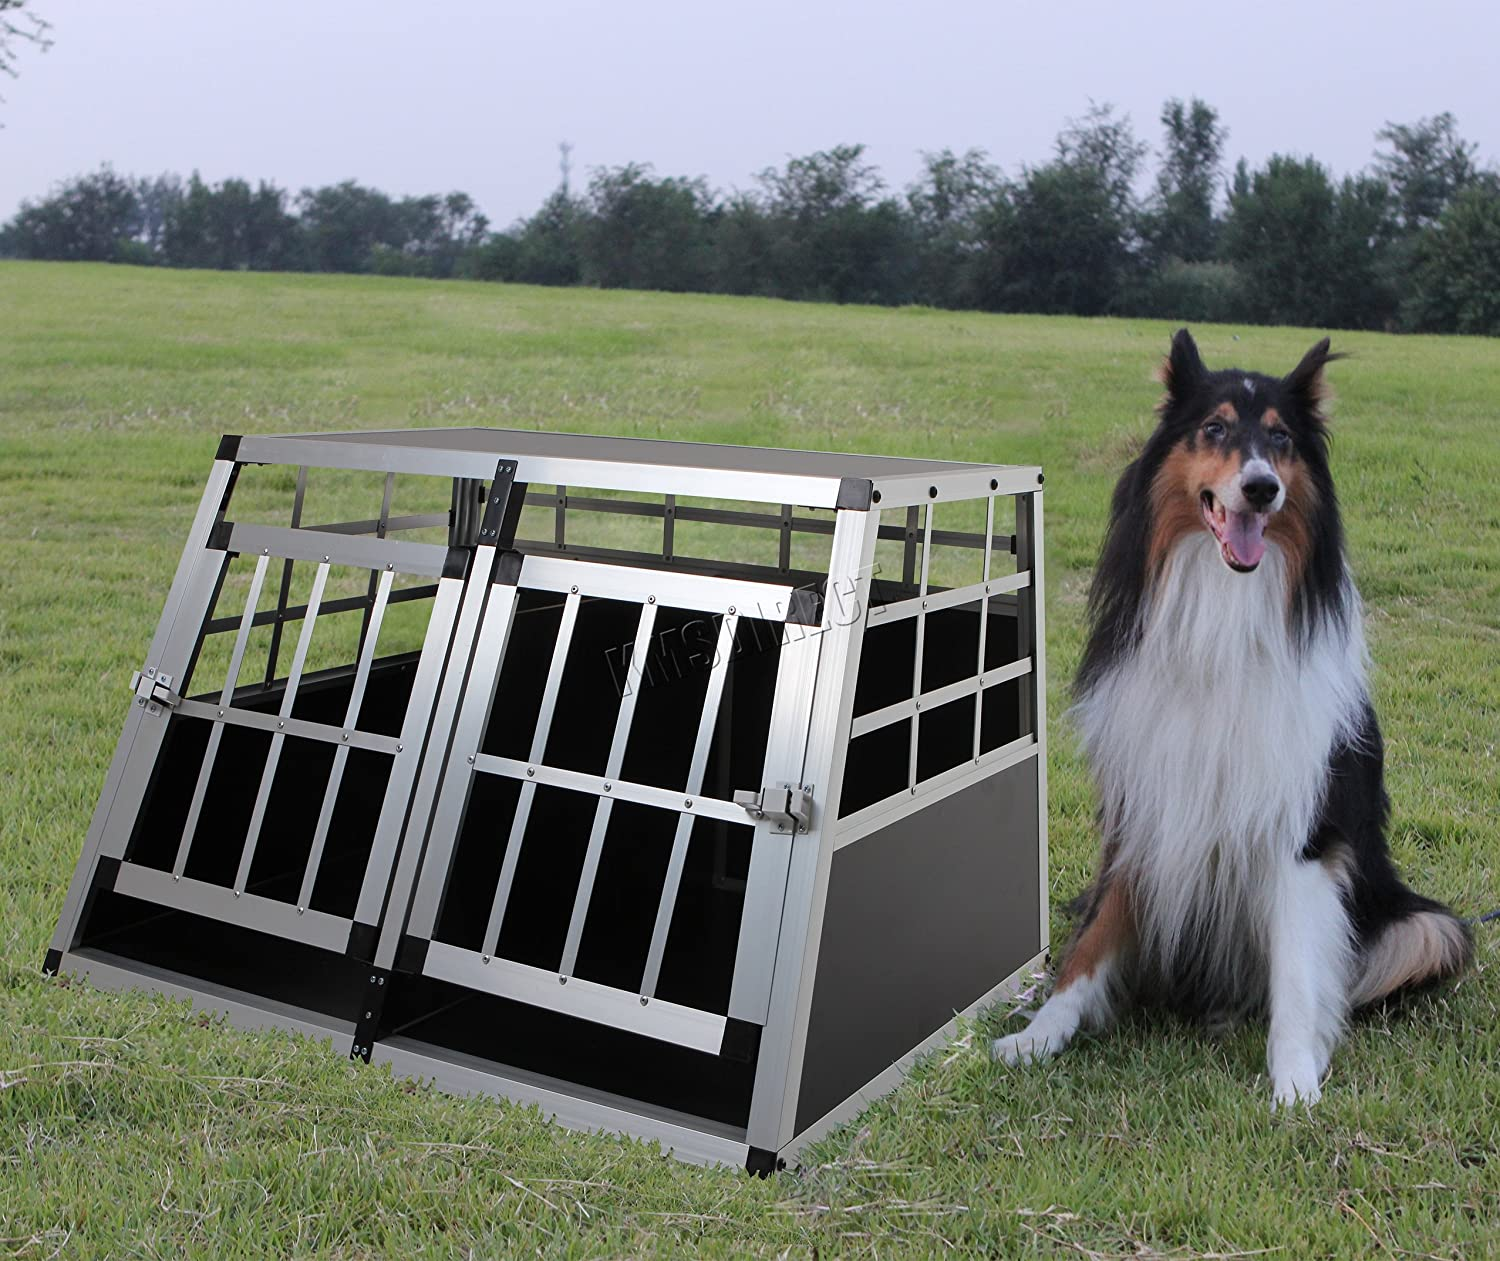 FoxHunter Aluminium Dog Puppy Cat Pet Cage Kennel Animal House Portable Transport Travel Divider Crate Carrier Box Training Double Door Large Sturdy PCA02